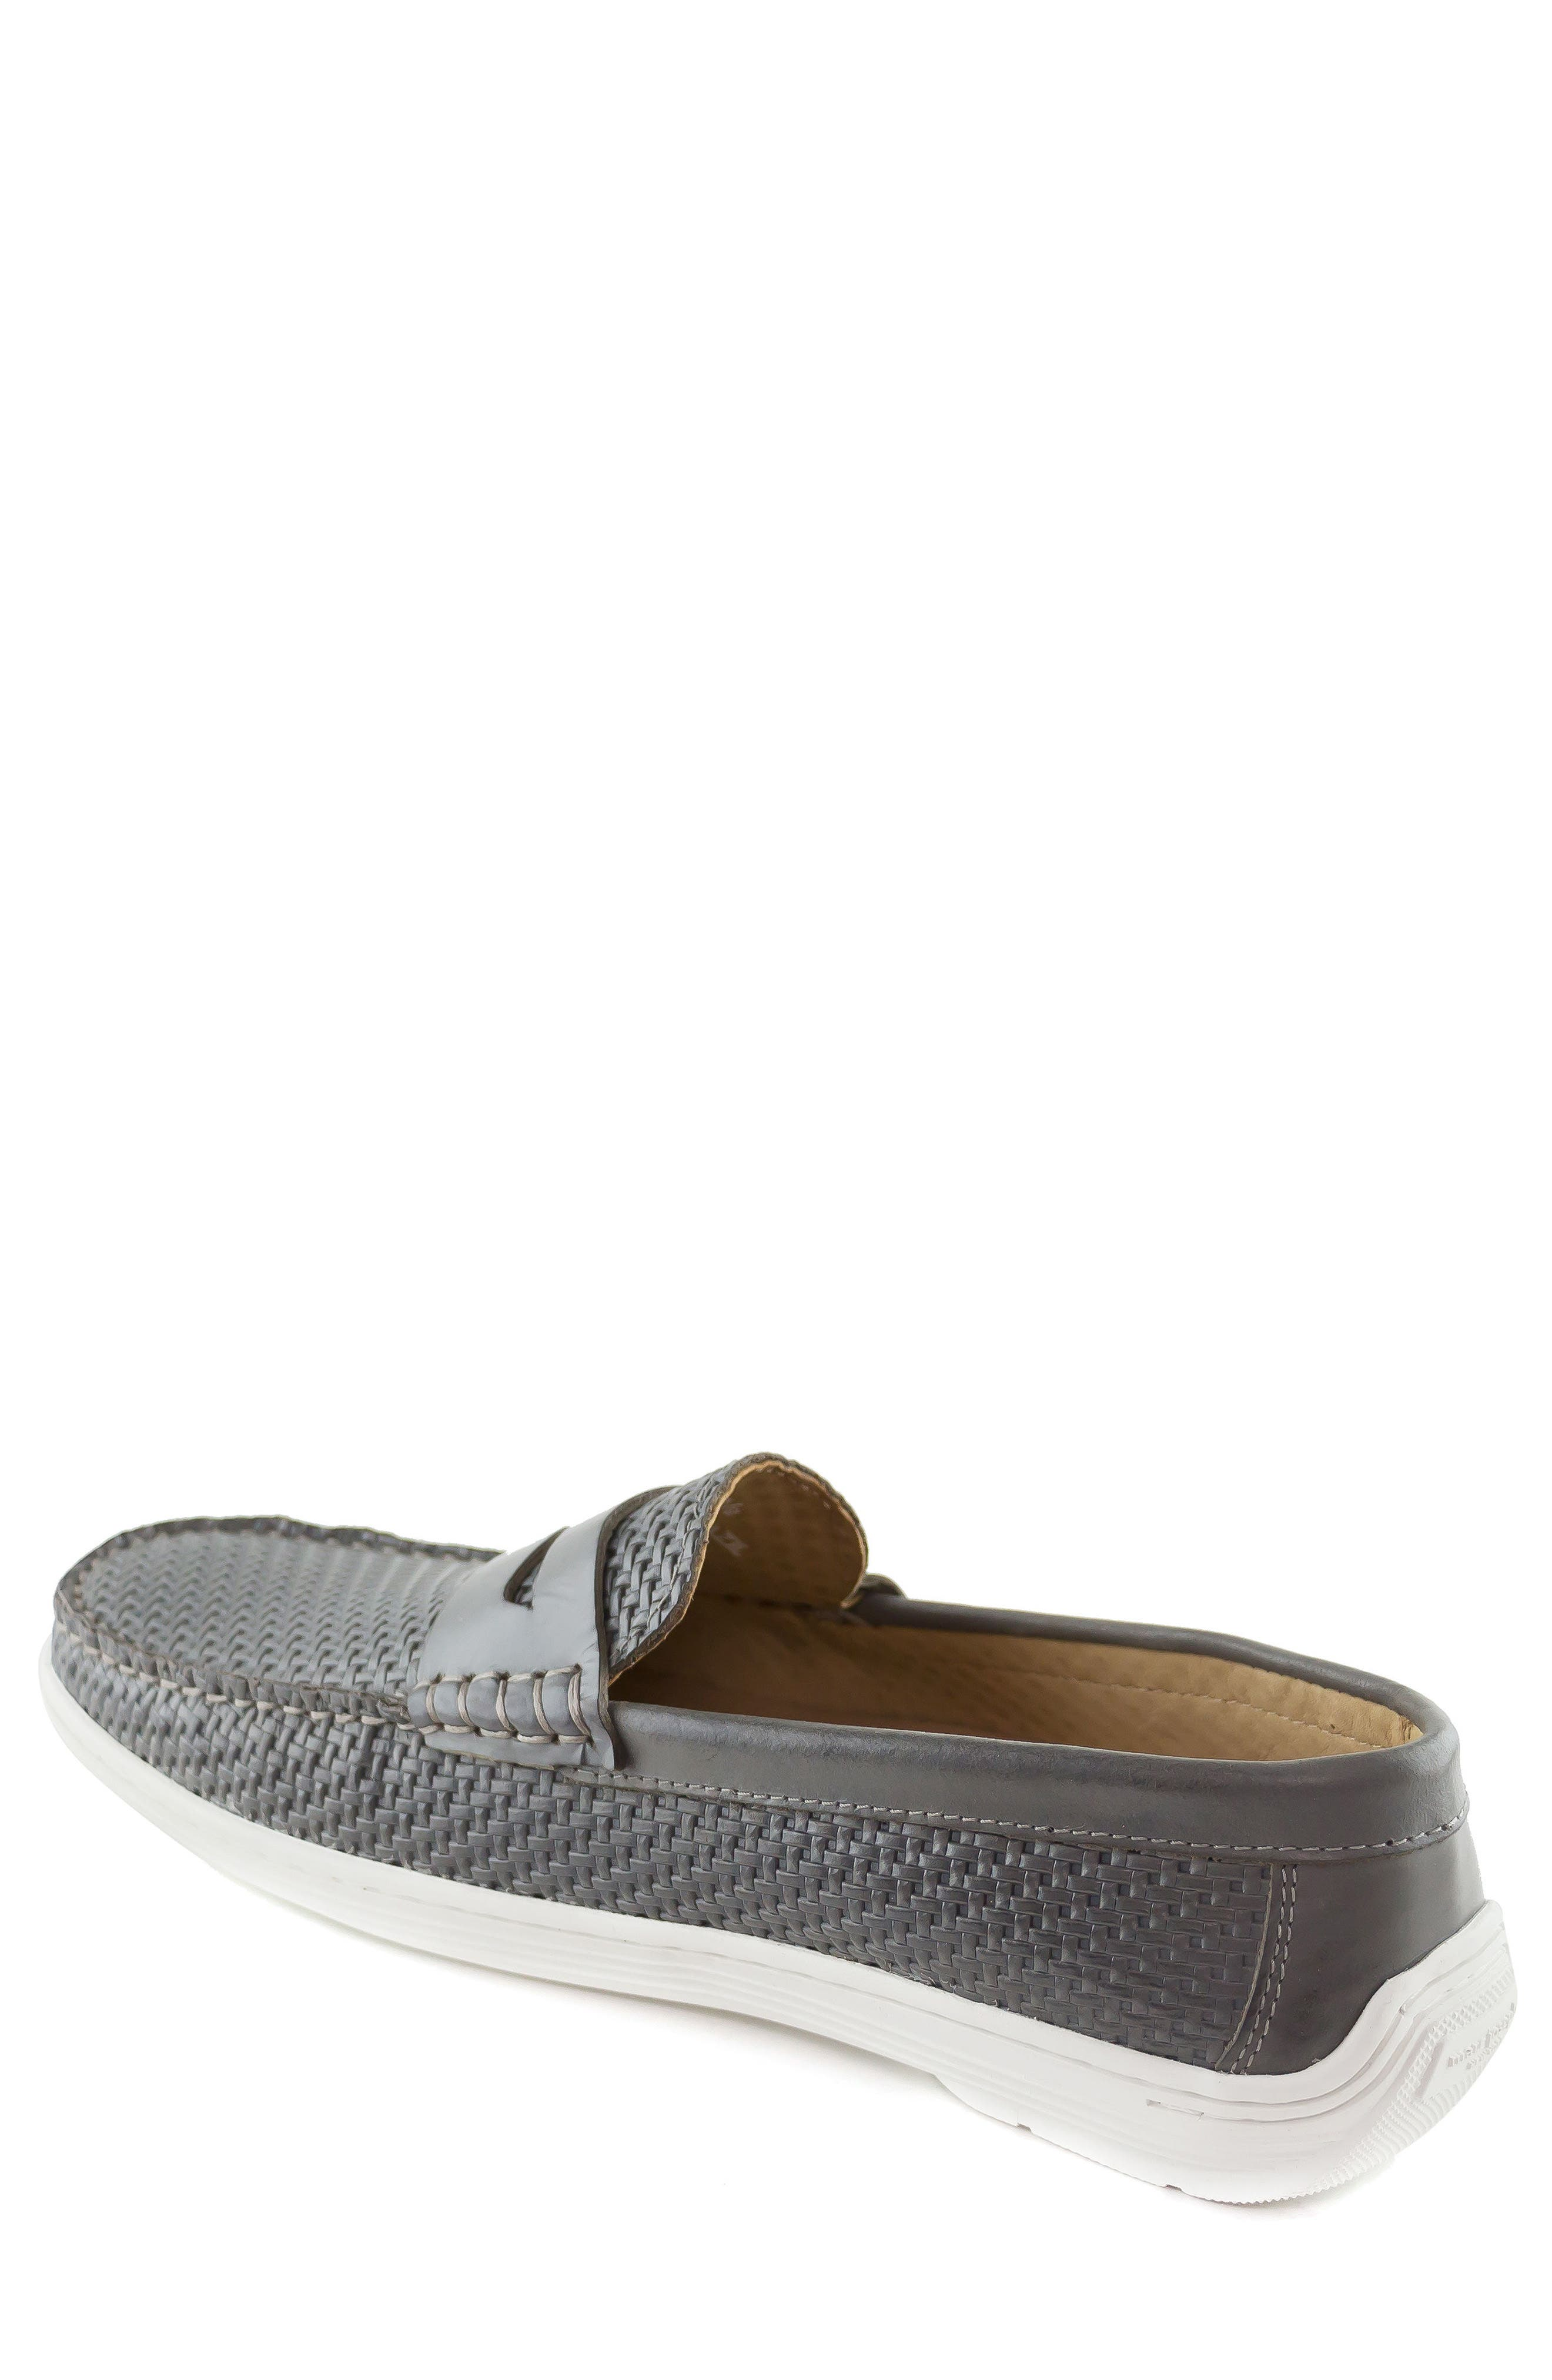 Atlantic Penny Loafer,                             Alternate thumbnail 10, color,